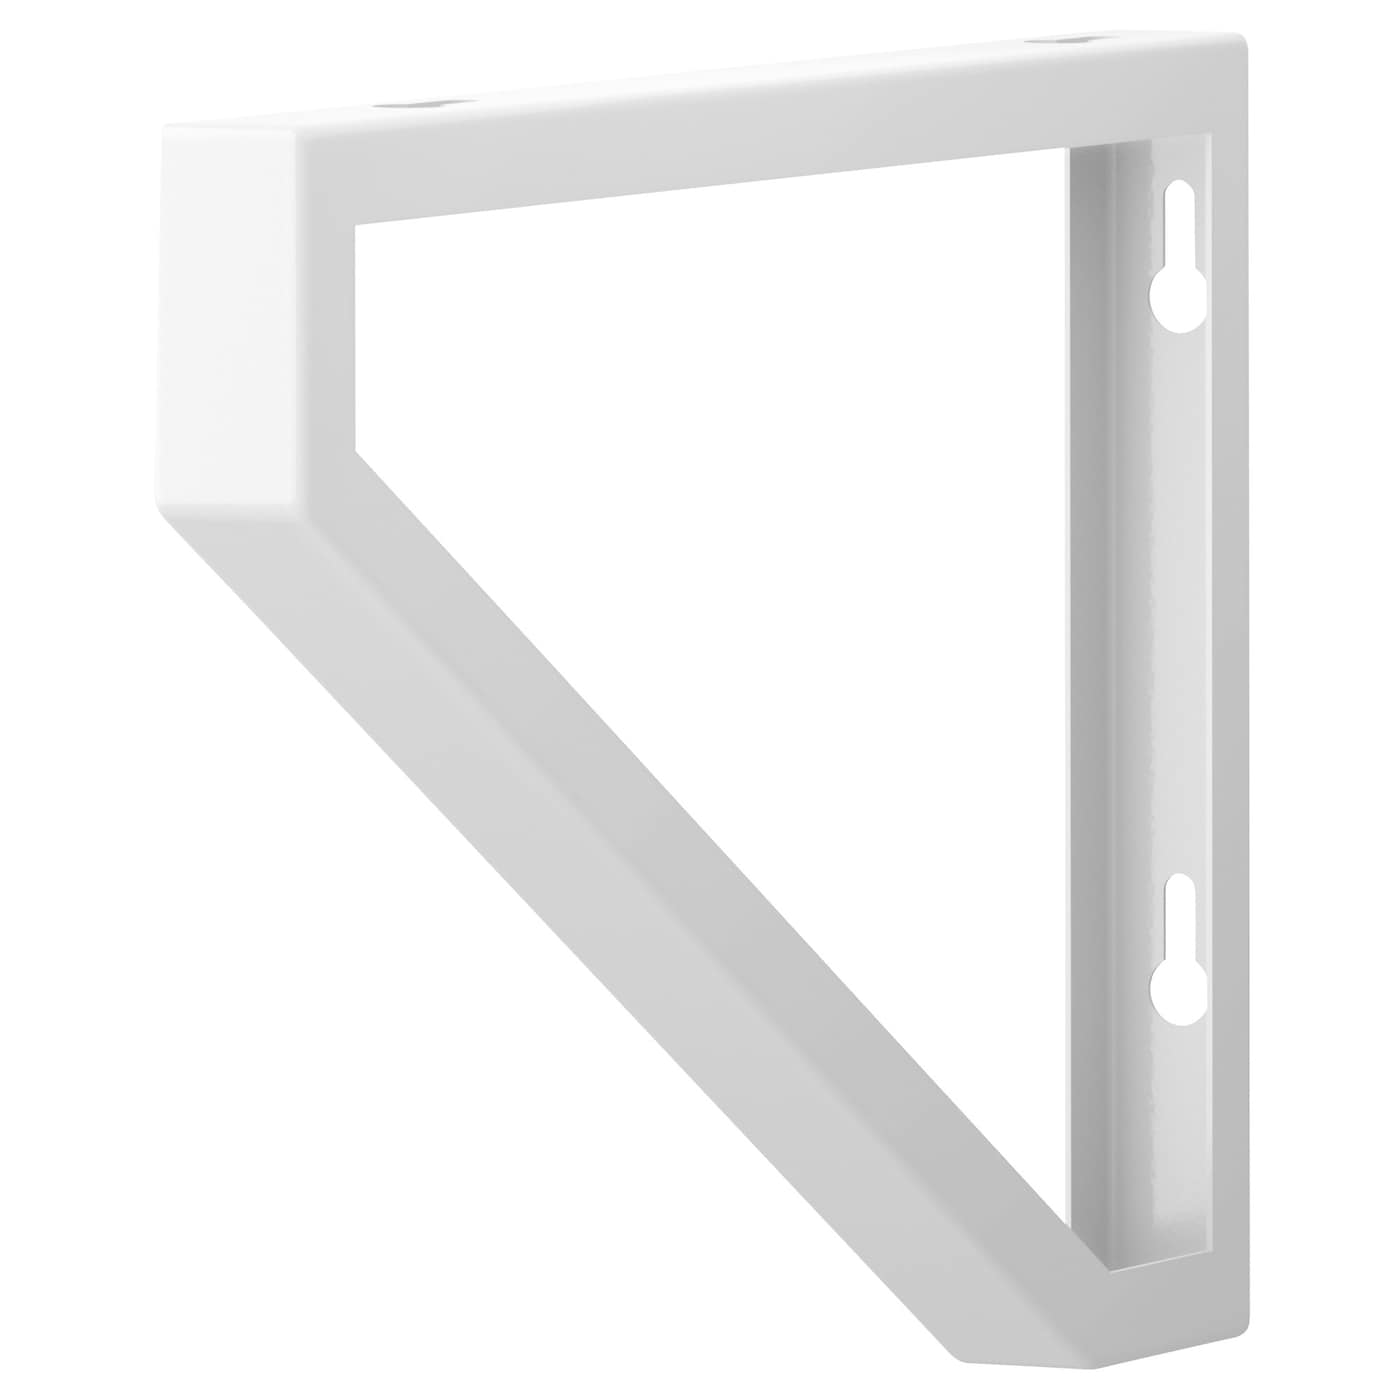 IKEA EKBY LERBERG bracket Works with both 19 cm and 28 cm deep shelves.